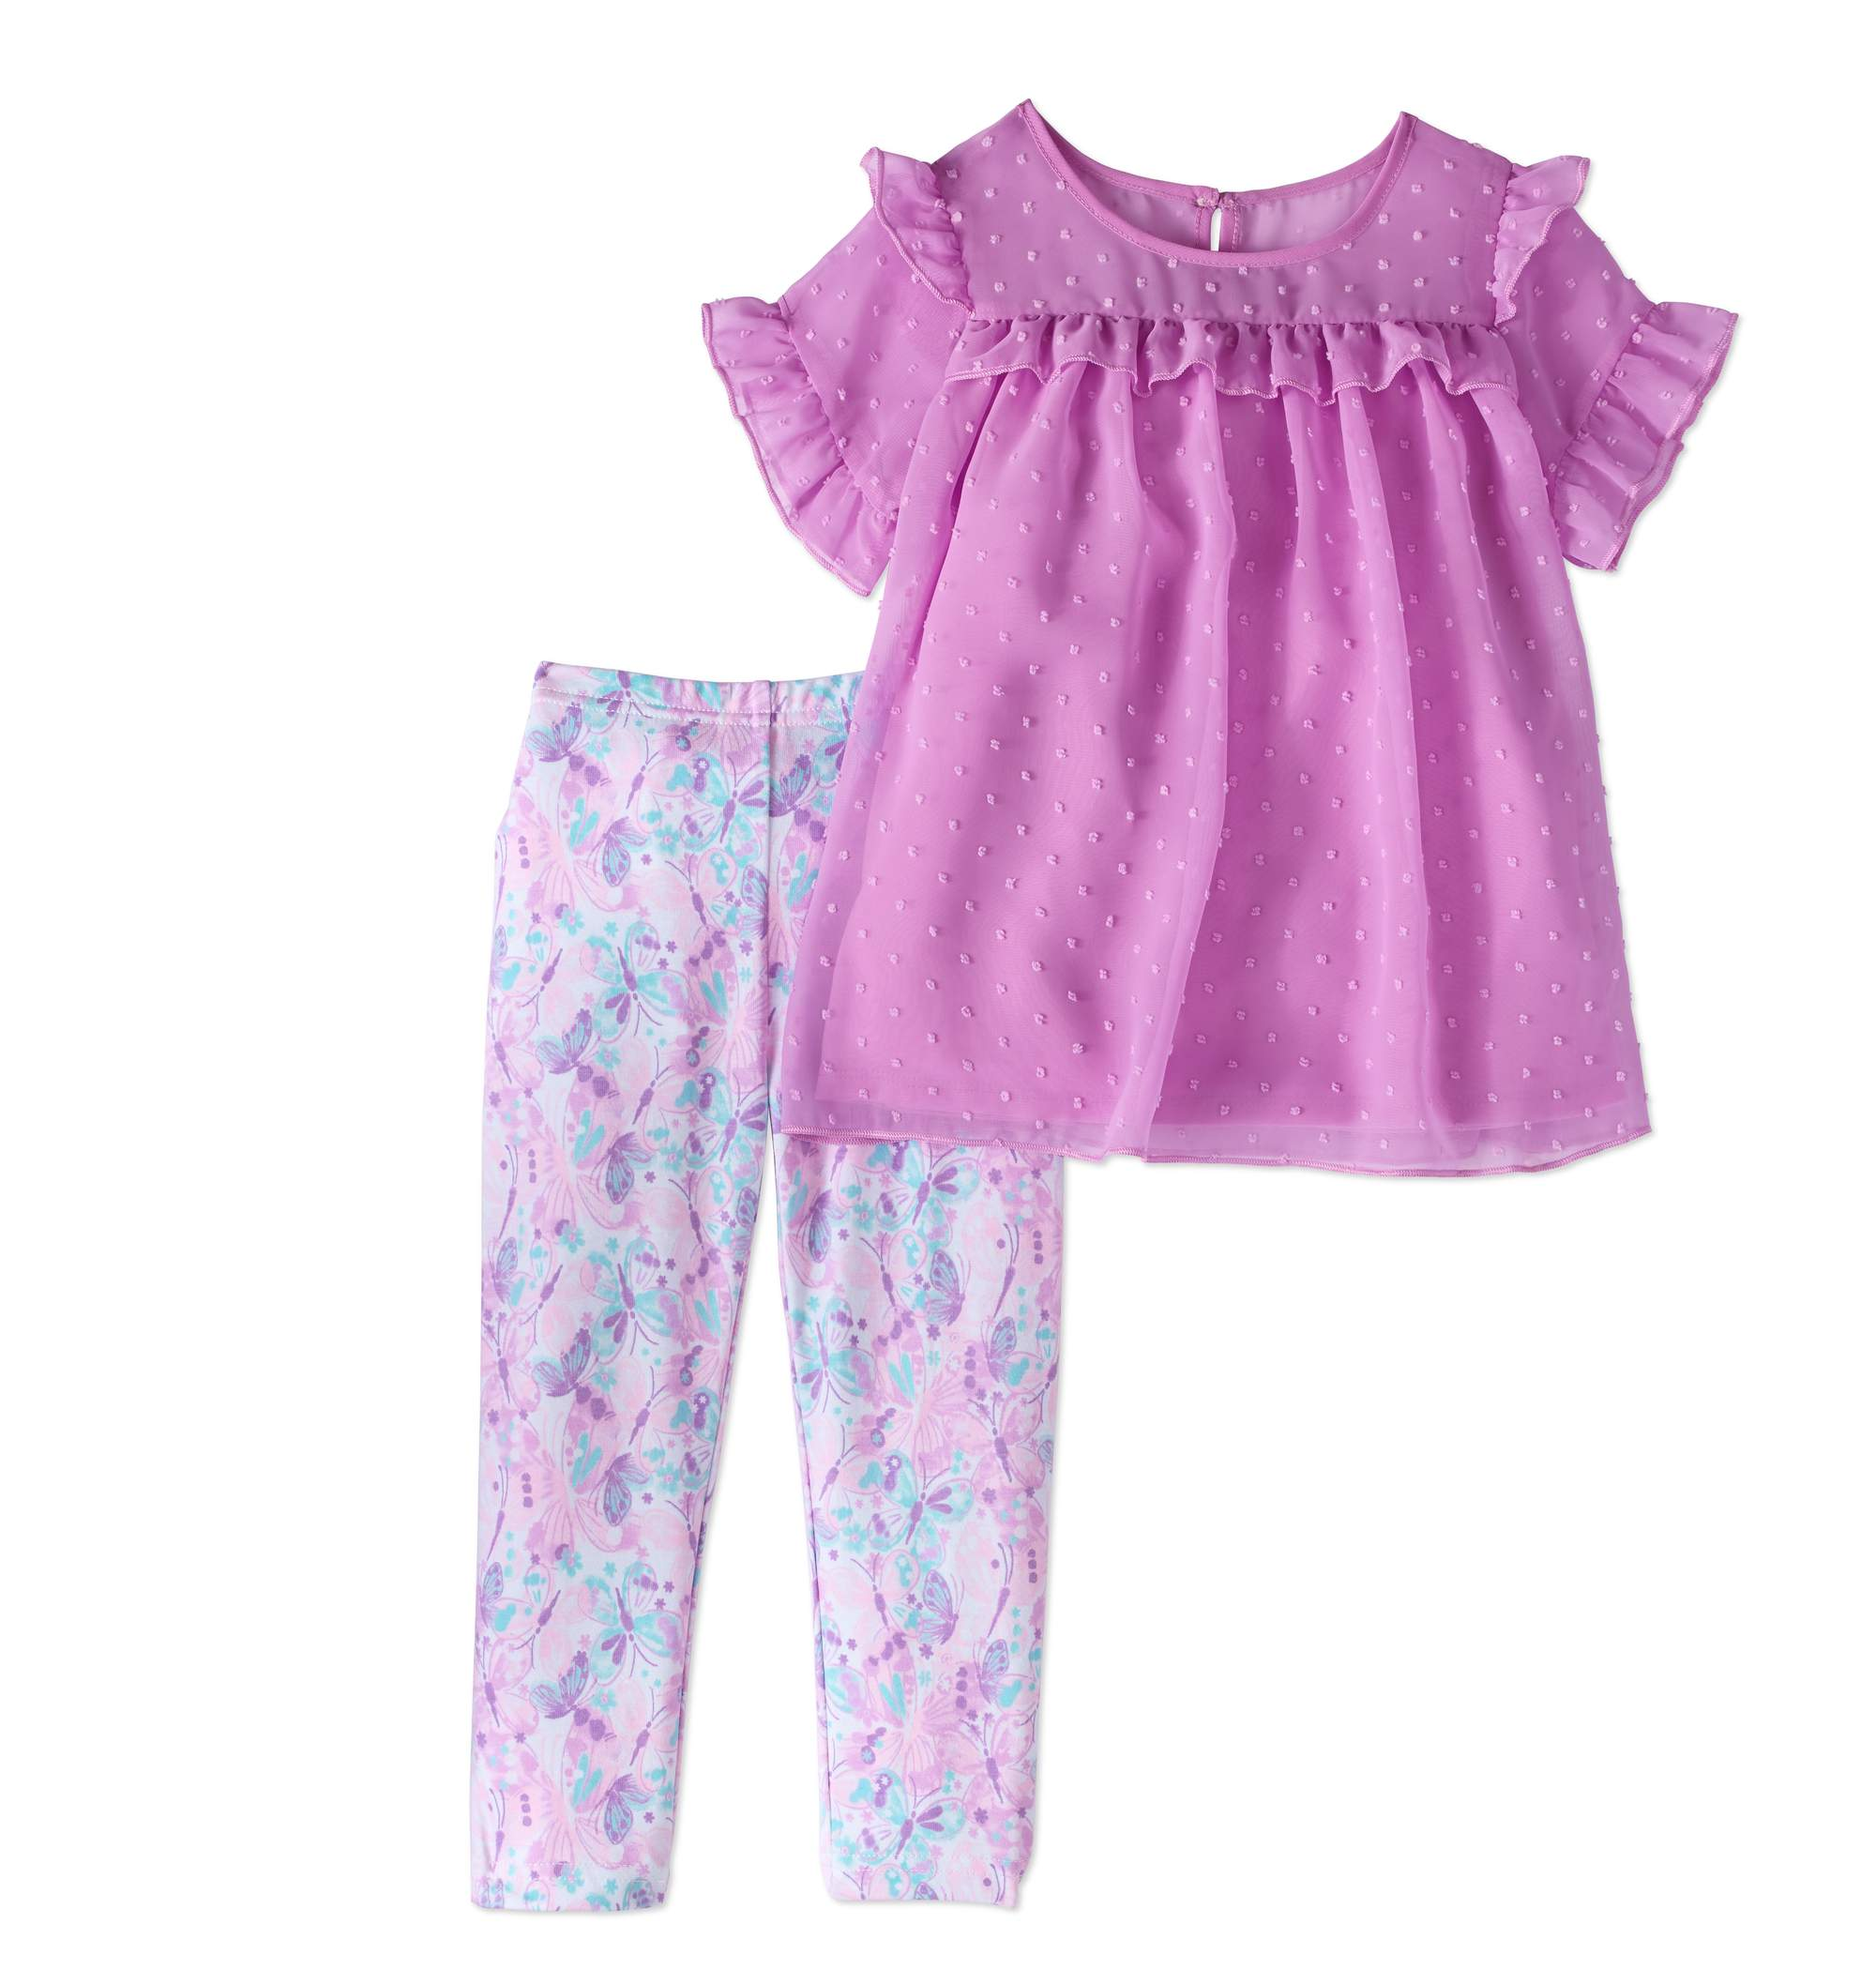 Healthtex Toddler Girls' Swiss Dot Chiffon Tunic and Leggings 2-Piece Outfit Set